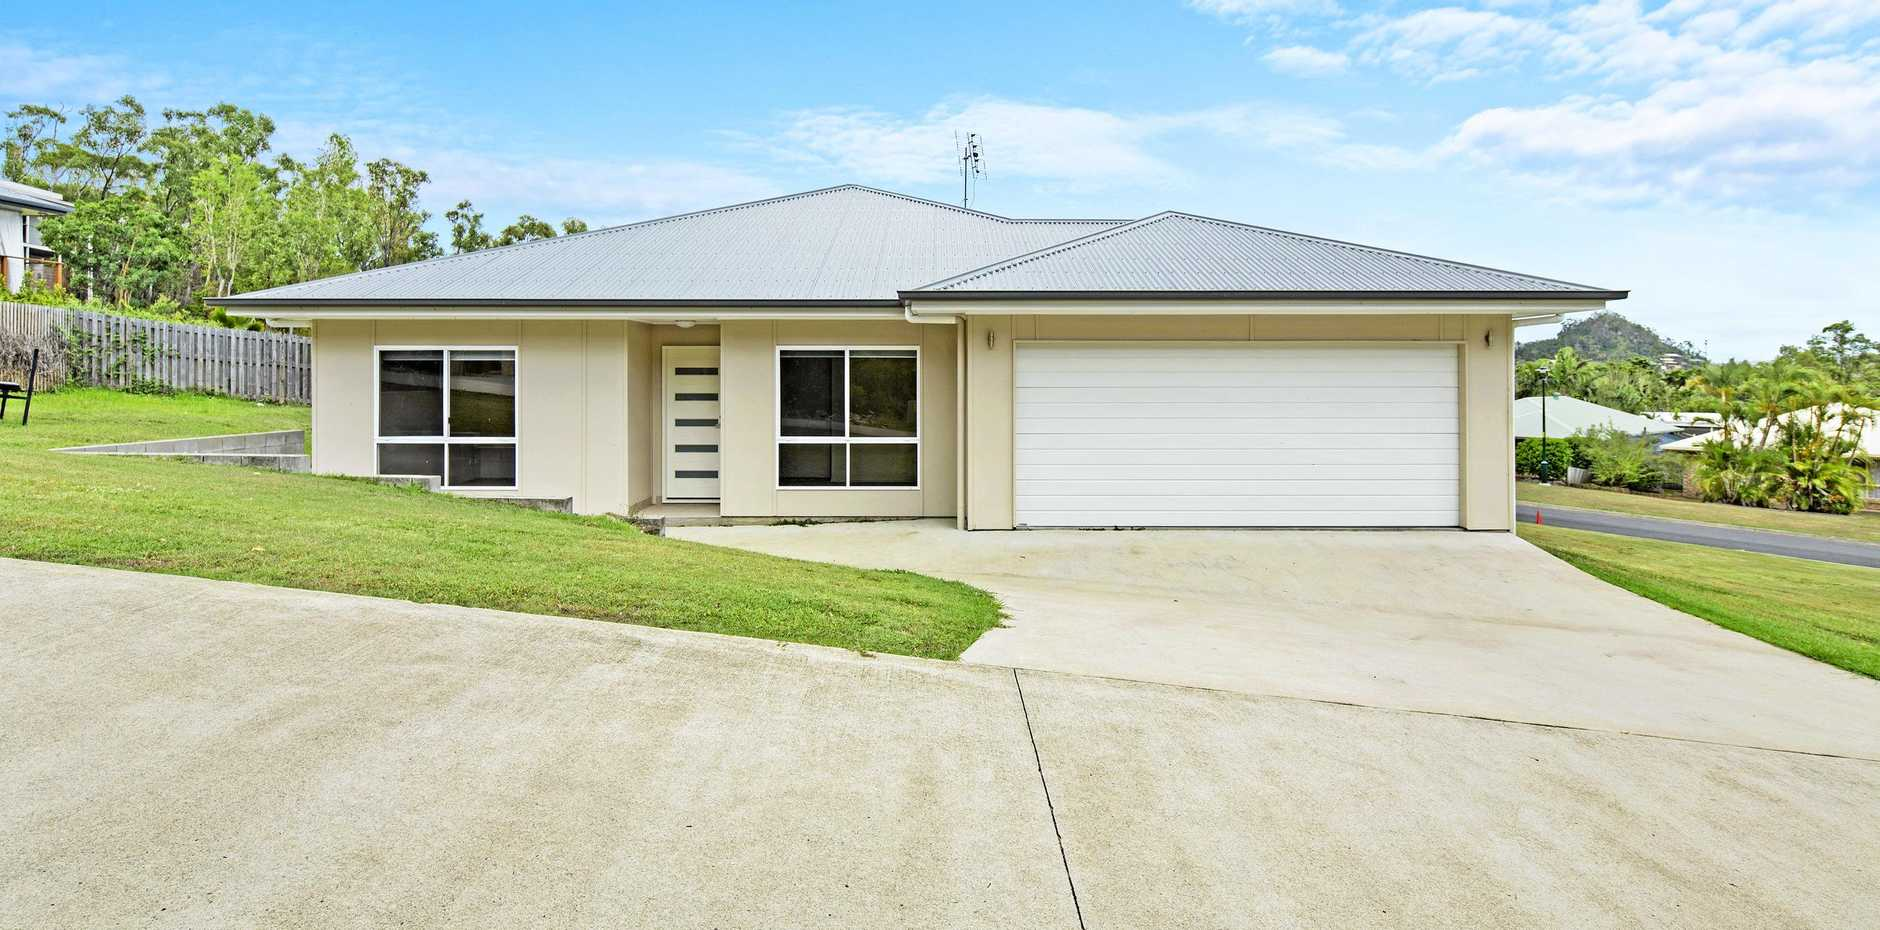 The property of the week, 3/13 Border Drive in Cannonvale.